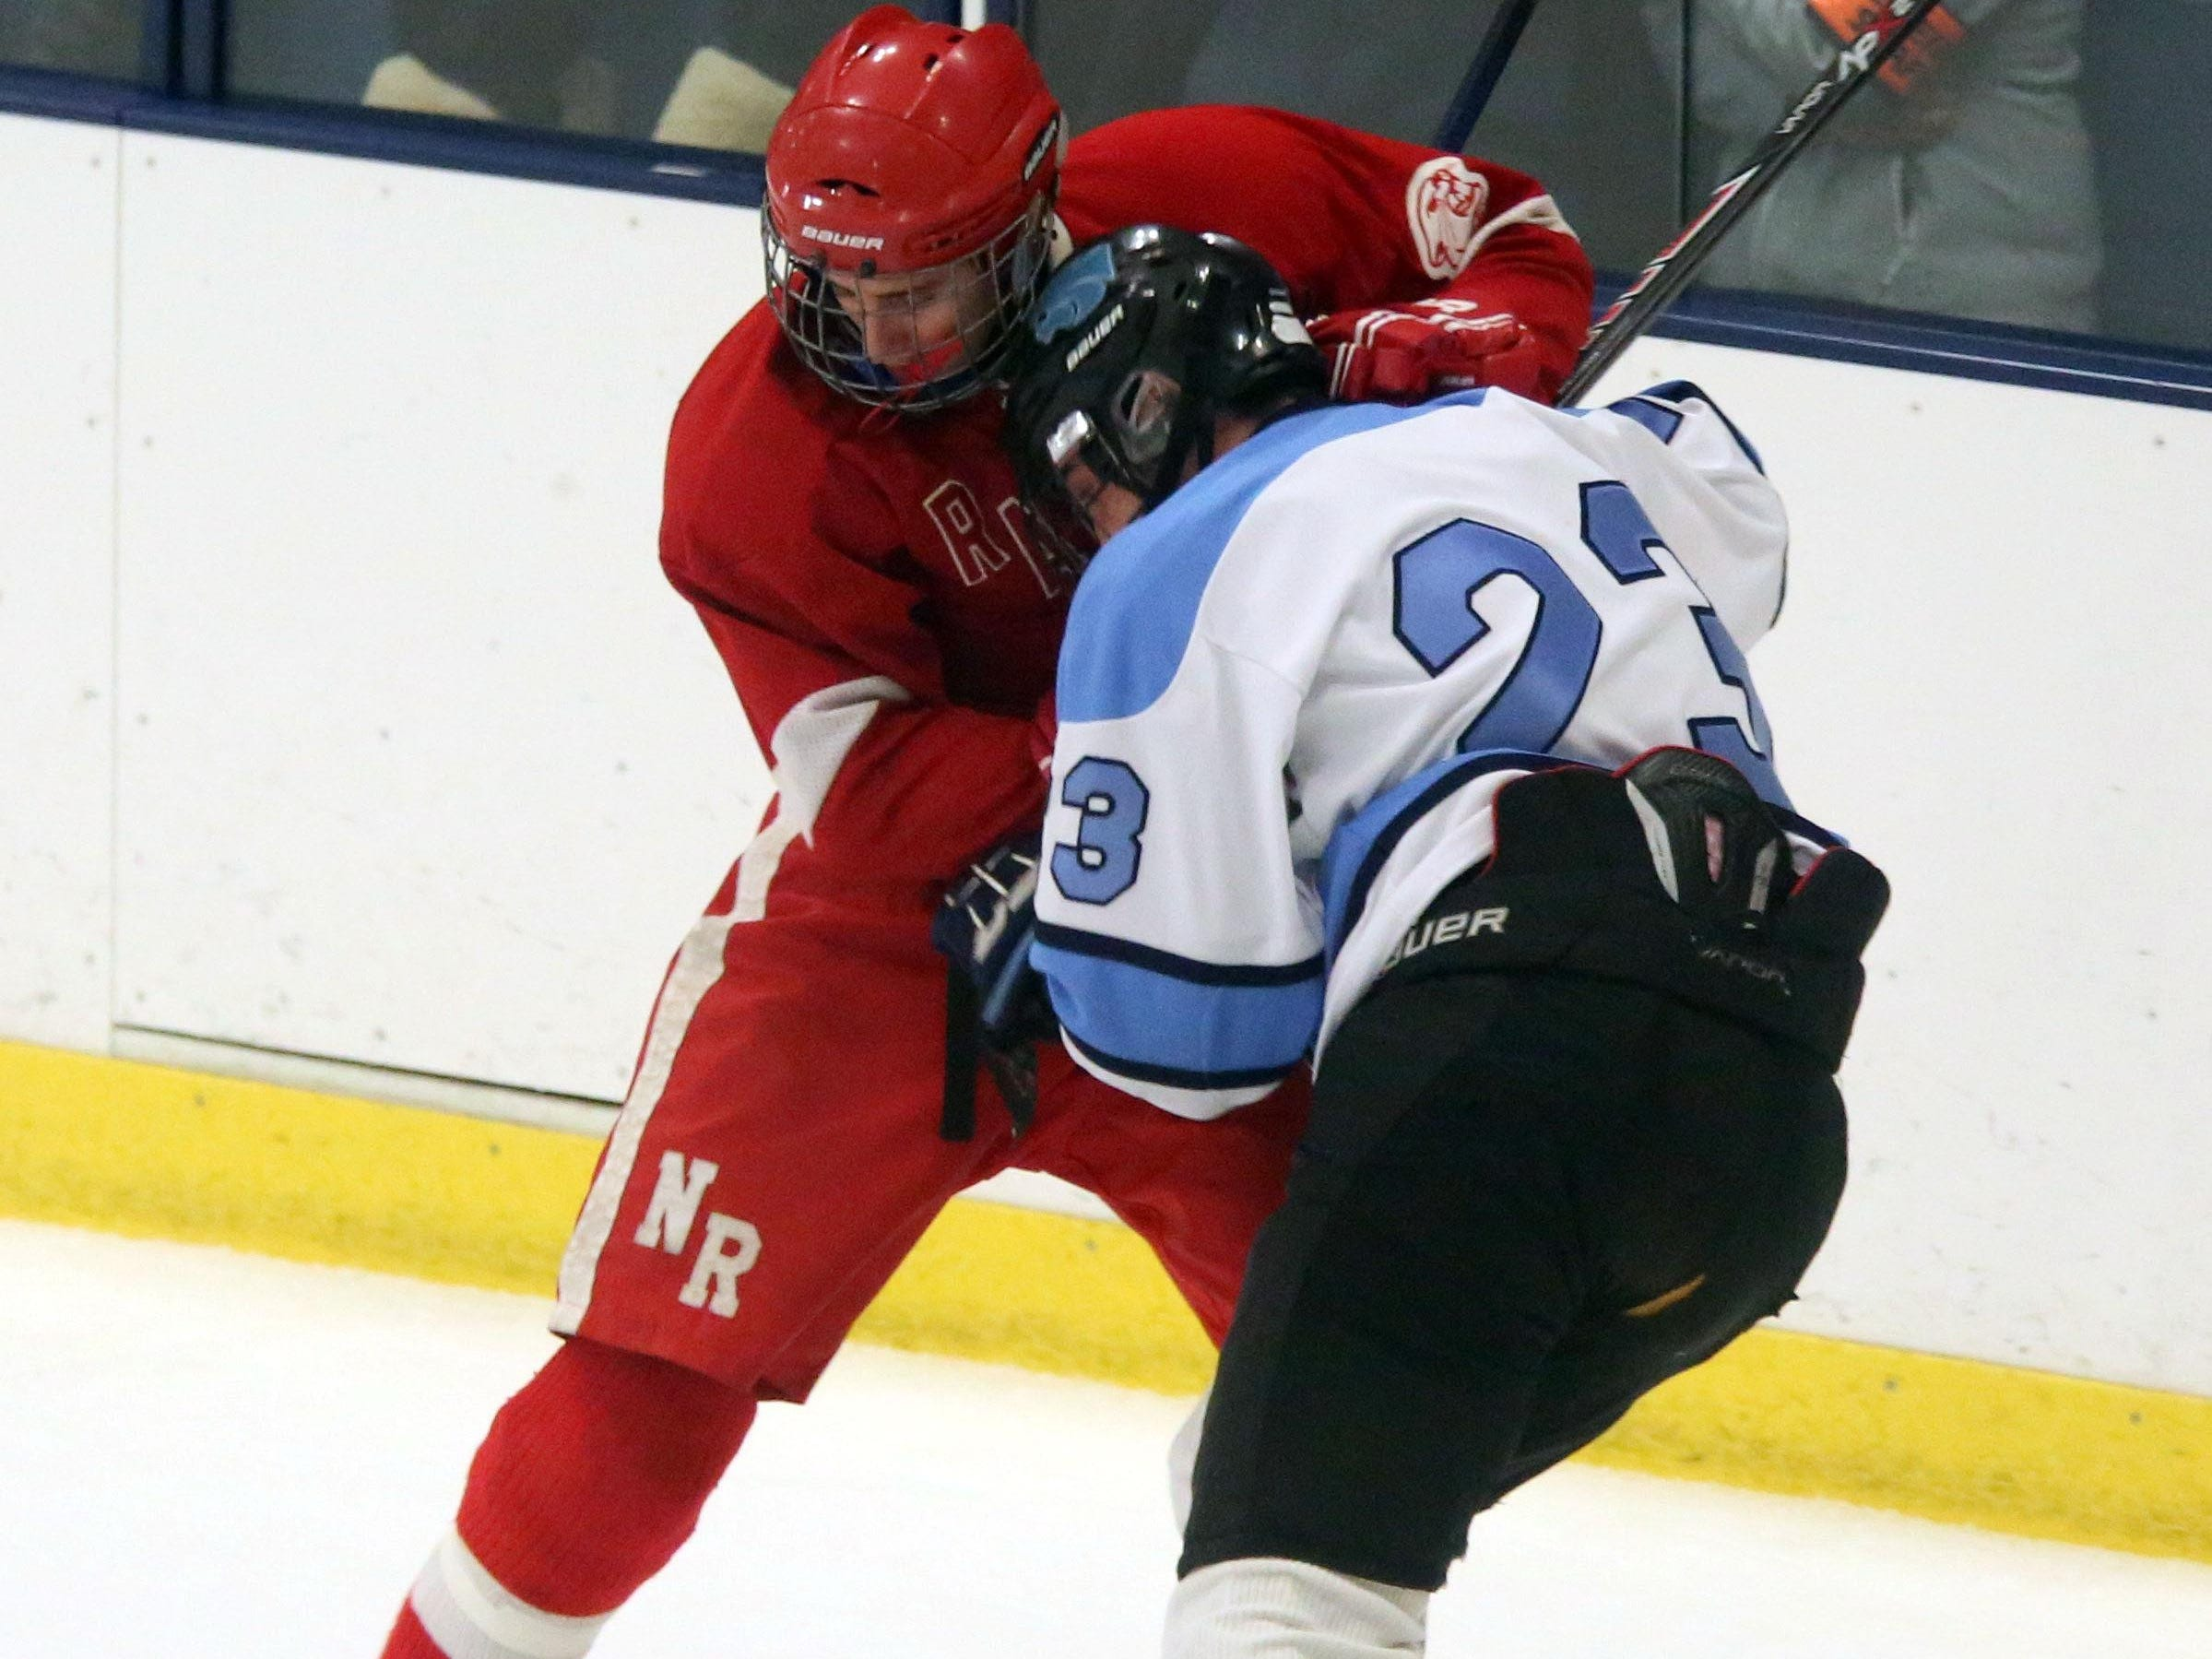 Suffern's CJ Greco (23) and North Rockland's Chris Vasquez (80) fight for control of the puck during the first period Section 1 Division 1 semifinal hockey at the Sport-O-Rama in Monsey at Feb. 26, 2016.